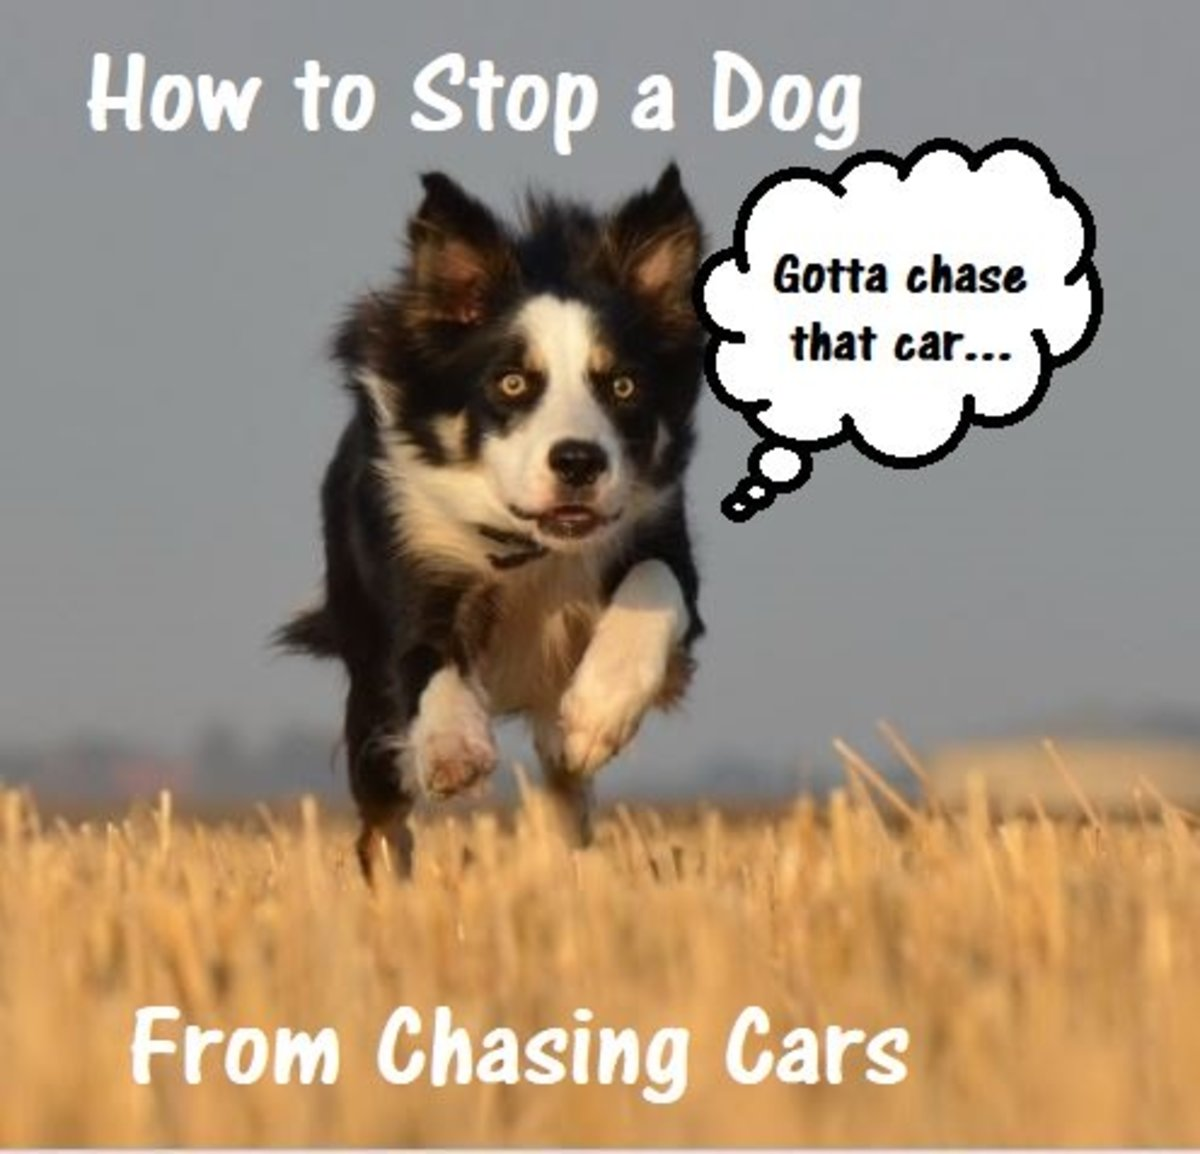 How to Stop a Dog From Chasing Cars